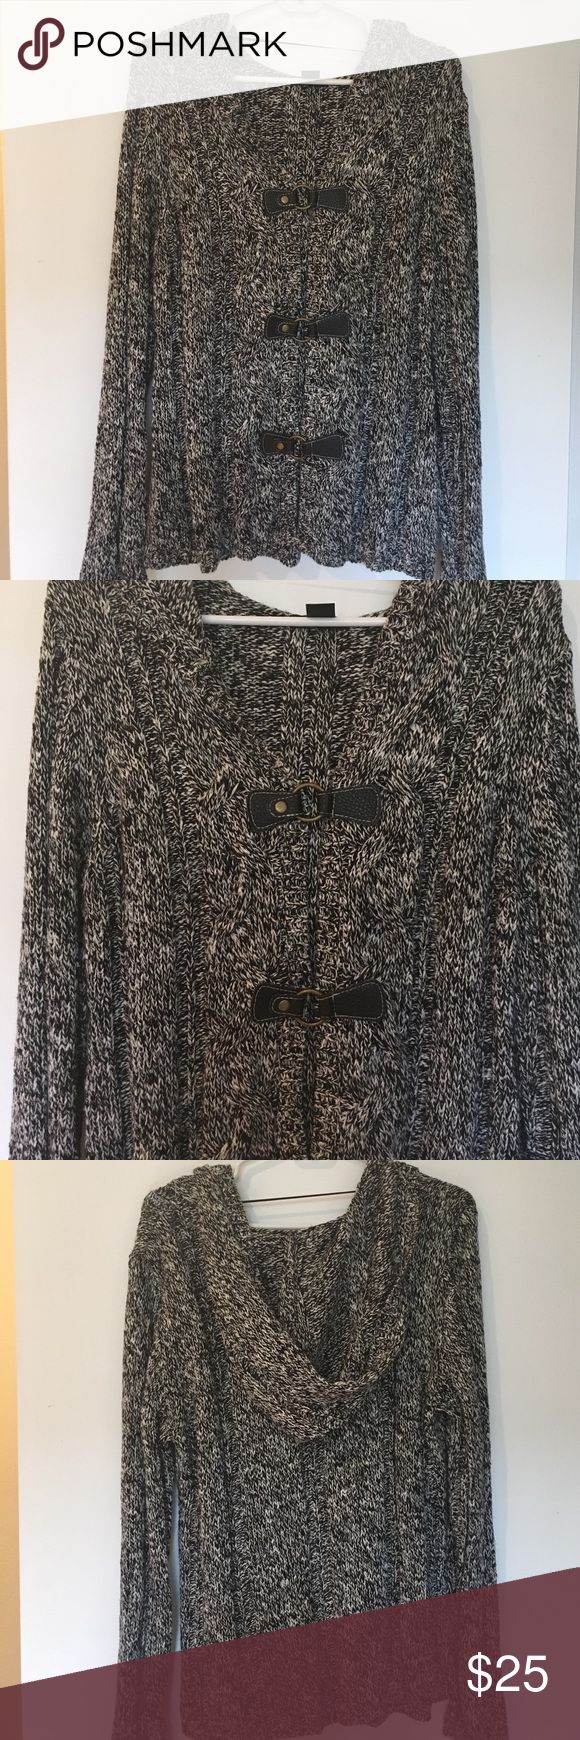 Style & Co Black and White Cardigan Black and white button/clasp closure. Great for layering on a chilly night. 66% Cotton 34% Acrylic Style & Co Sweaters Cardigans